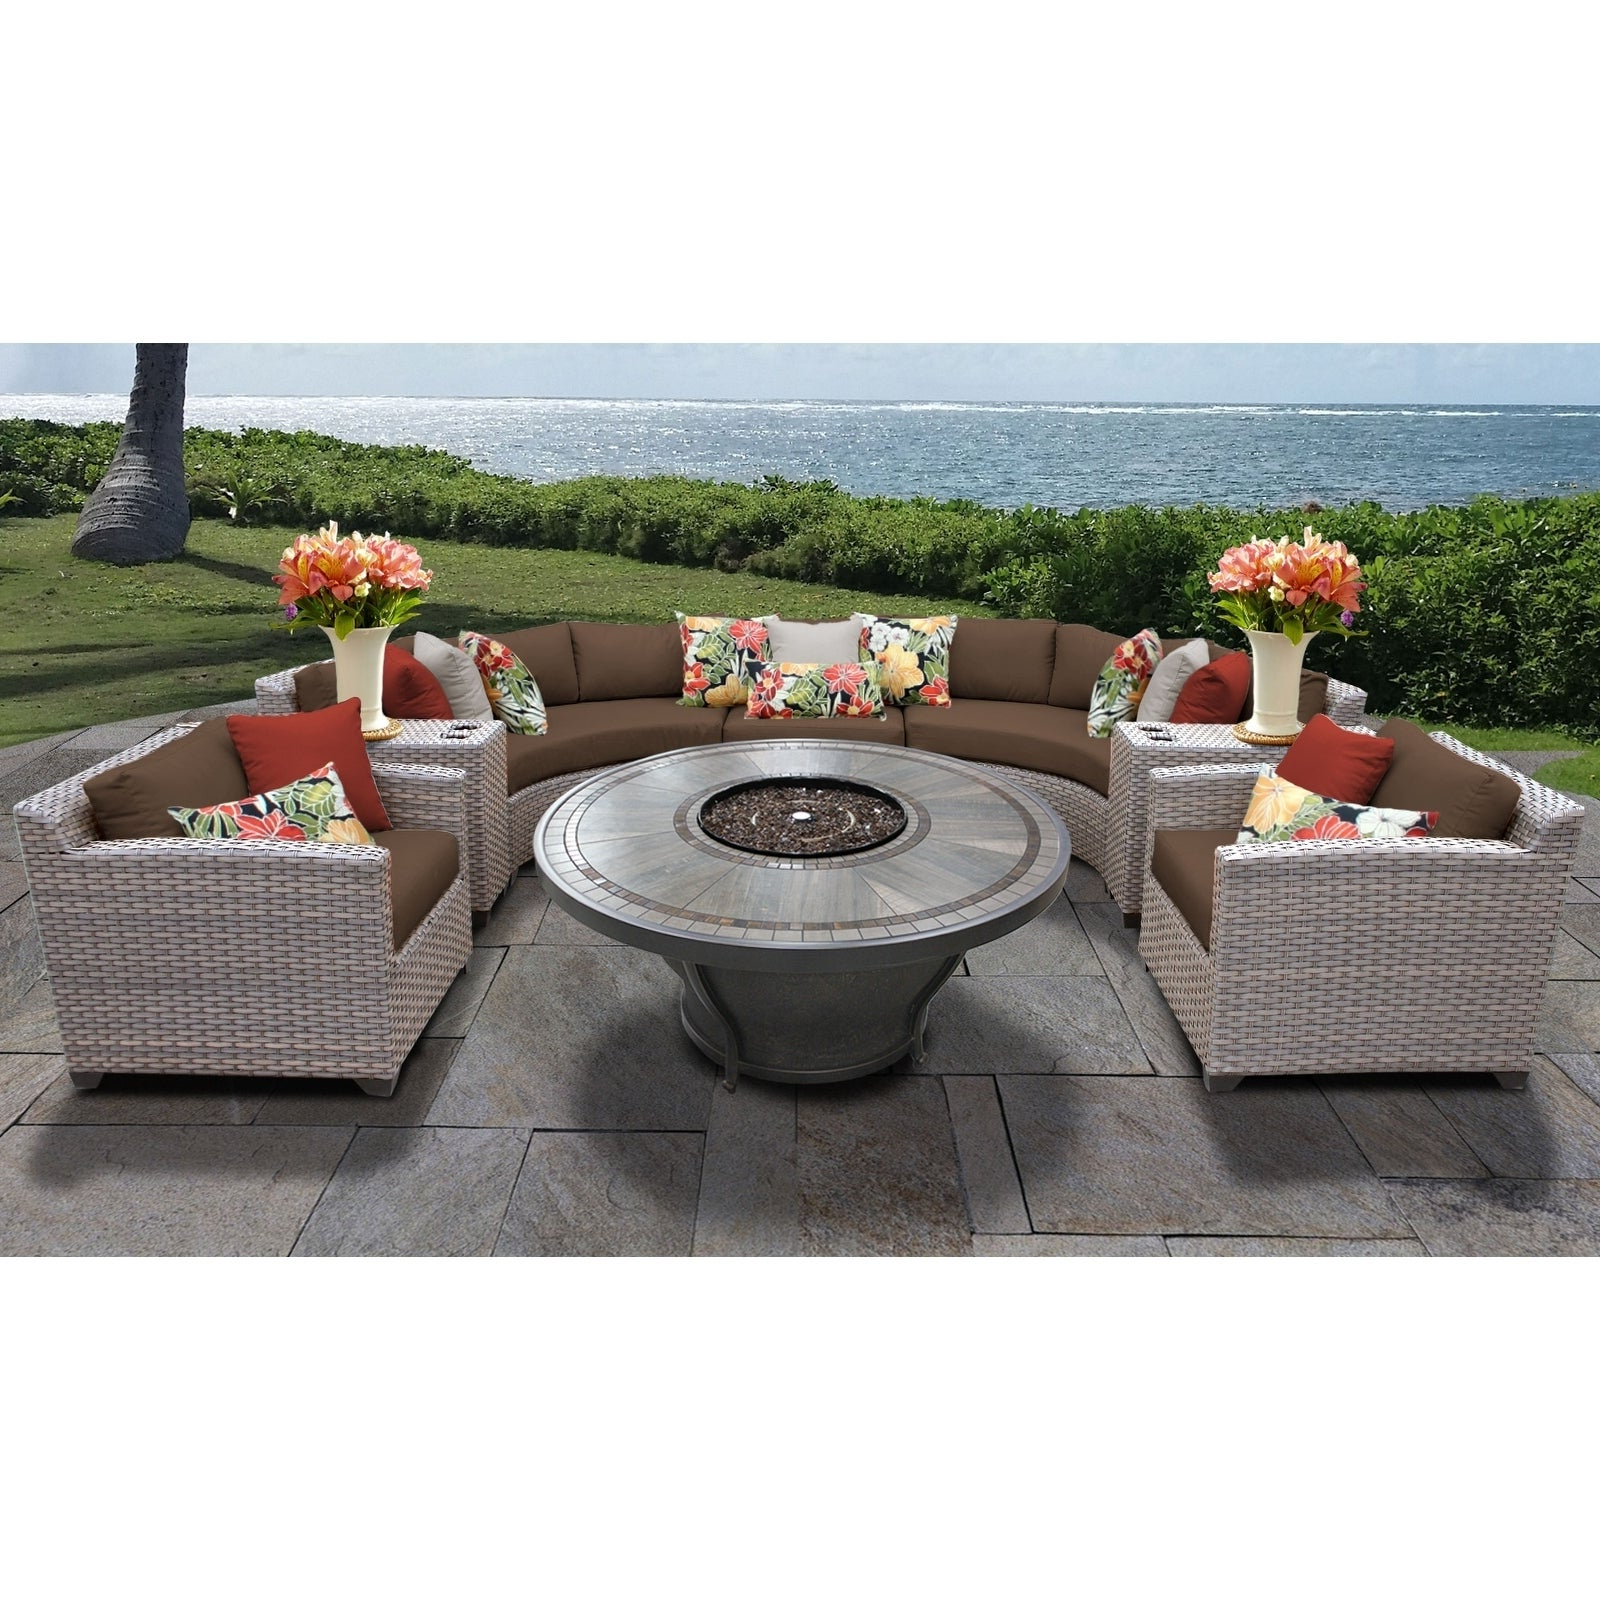 Florence 8 Piece Outdoor Wicker Patio Furniture Set 08K Pertaining To Most Popular Baca Patio Sofas With Cushions (View 13 of 25)